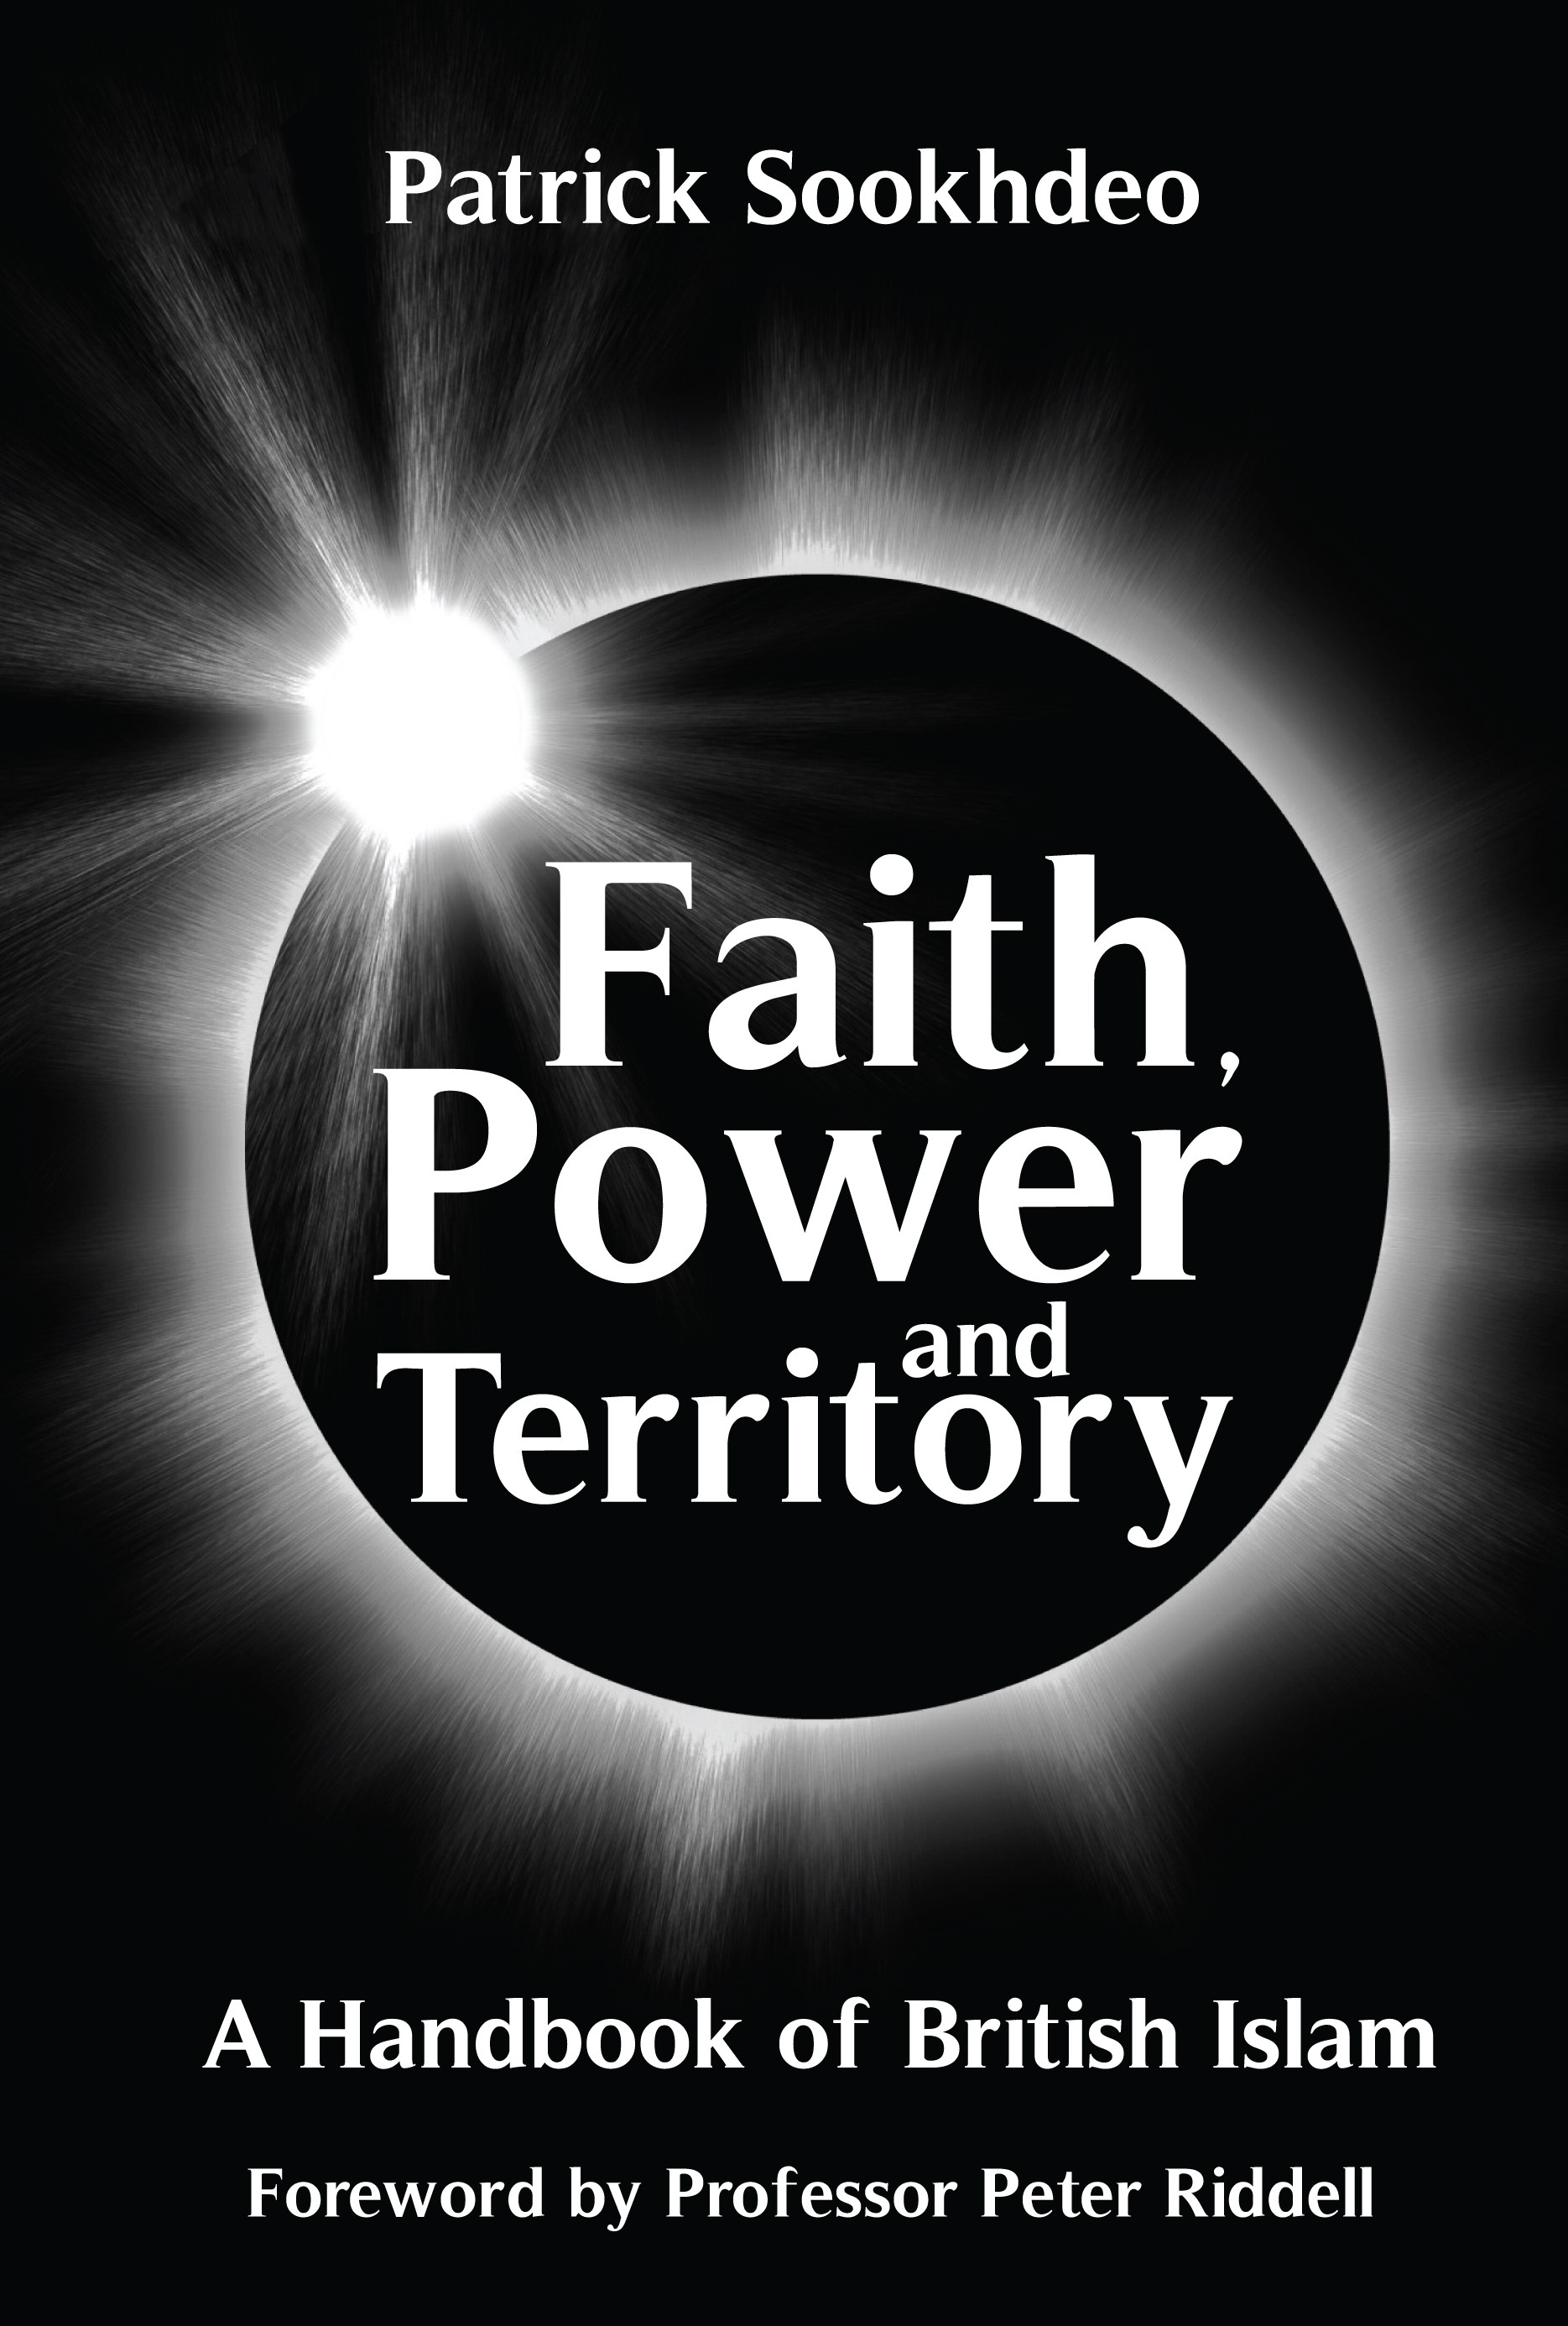 Faith, Power and Territory